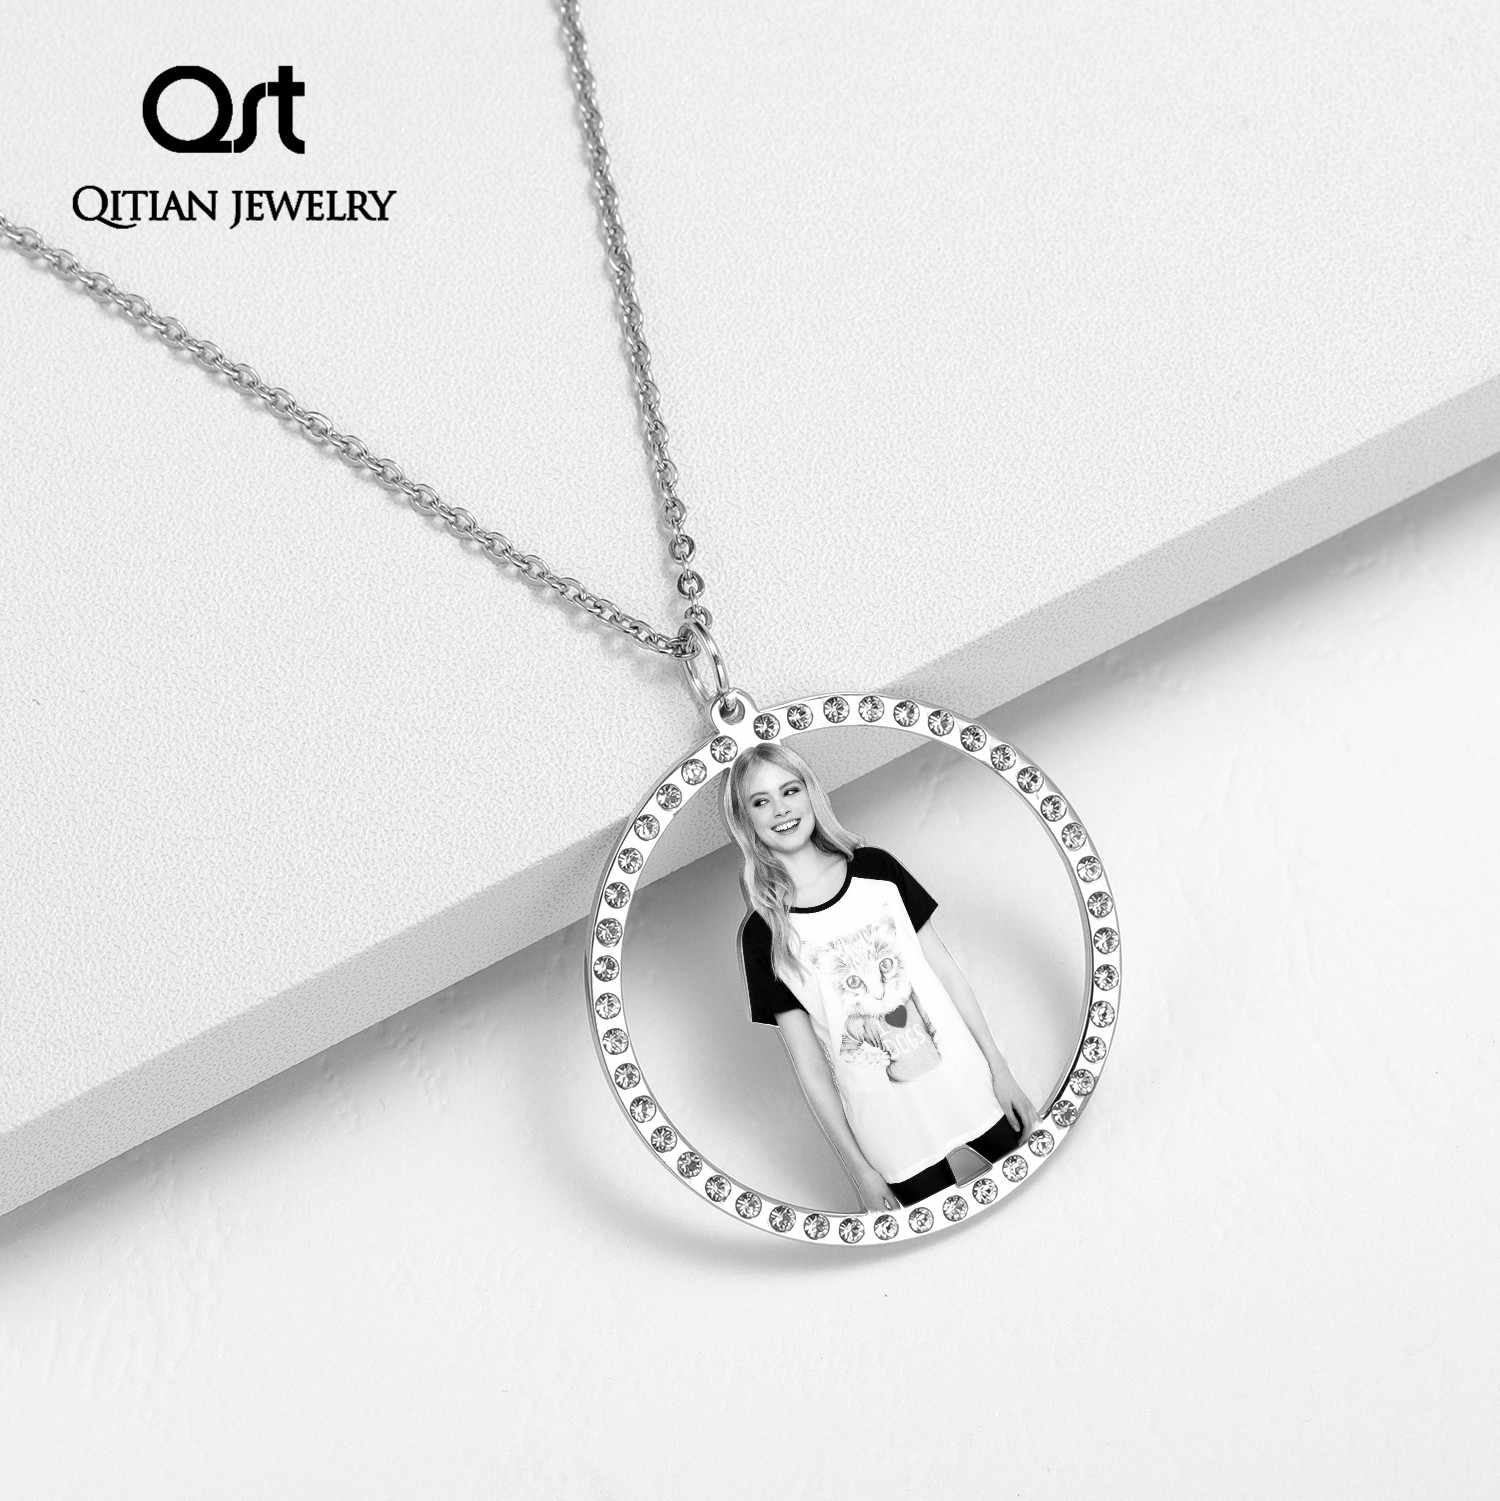 Personalized Necklace Custom Made Photo Medallions Necklace & Pendant  Chain Gold Silver Color Cubic Zircon Men's Hiphip Jewelry